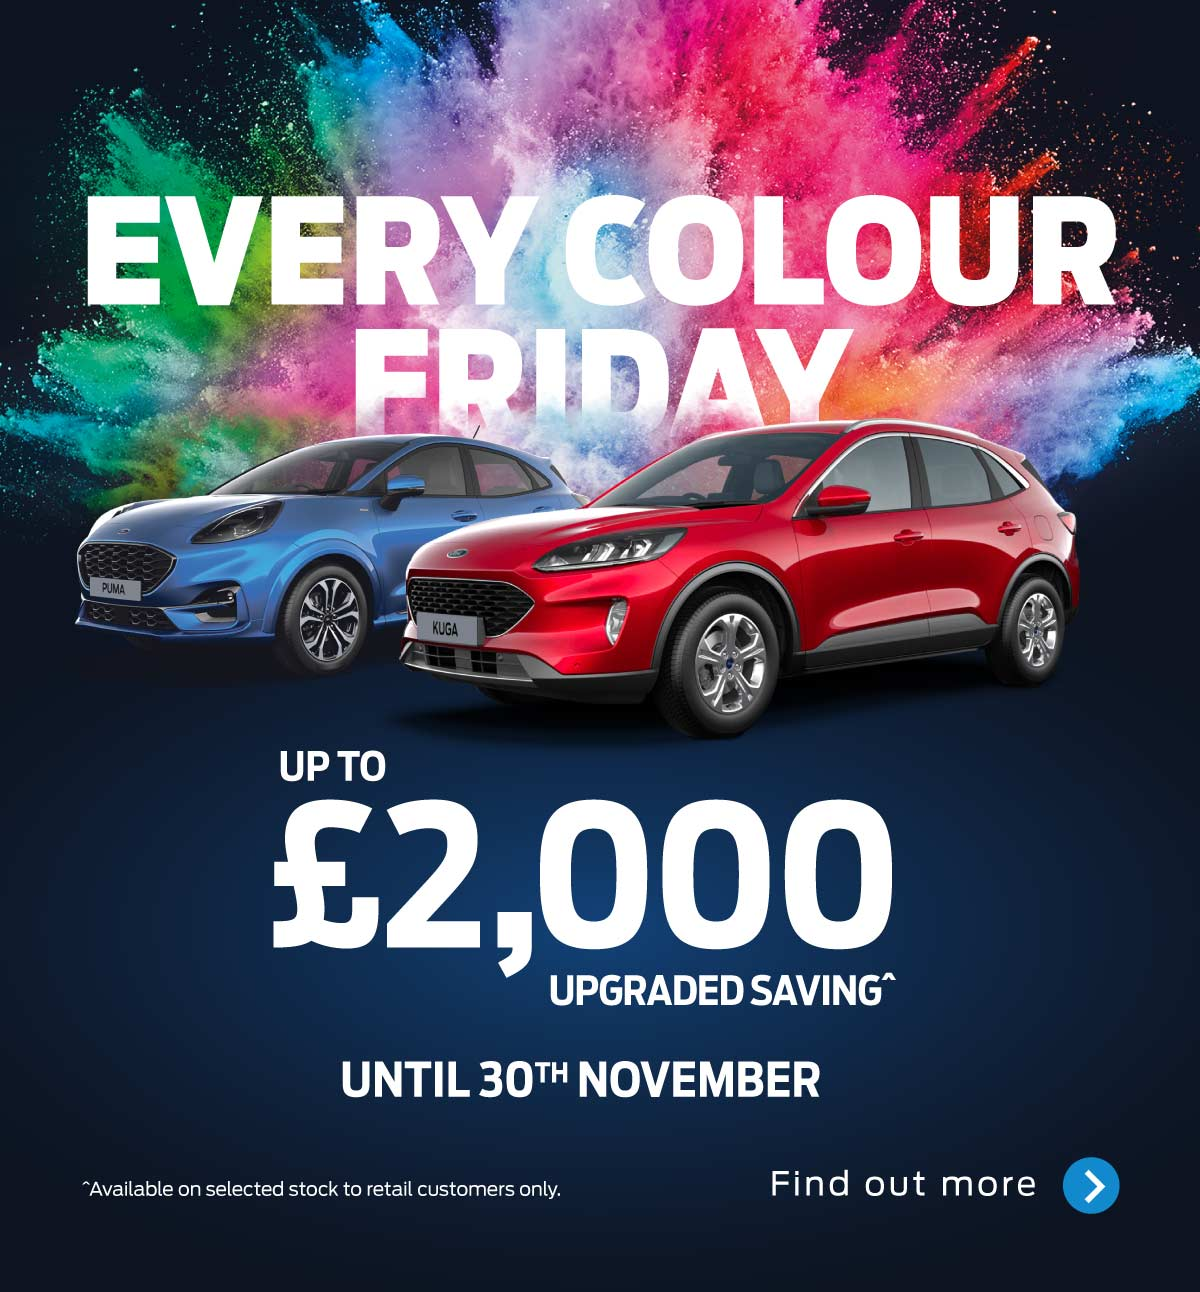 Ford Cars - Every Colour Friday